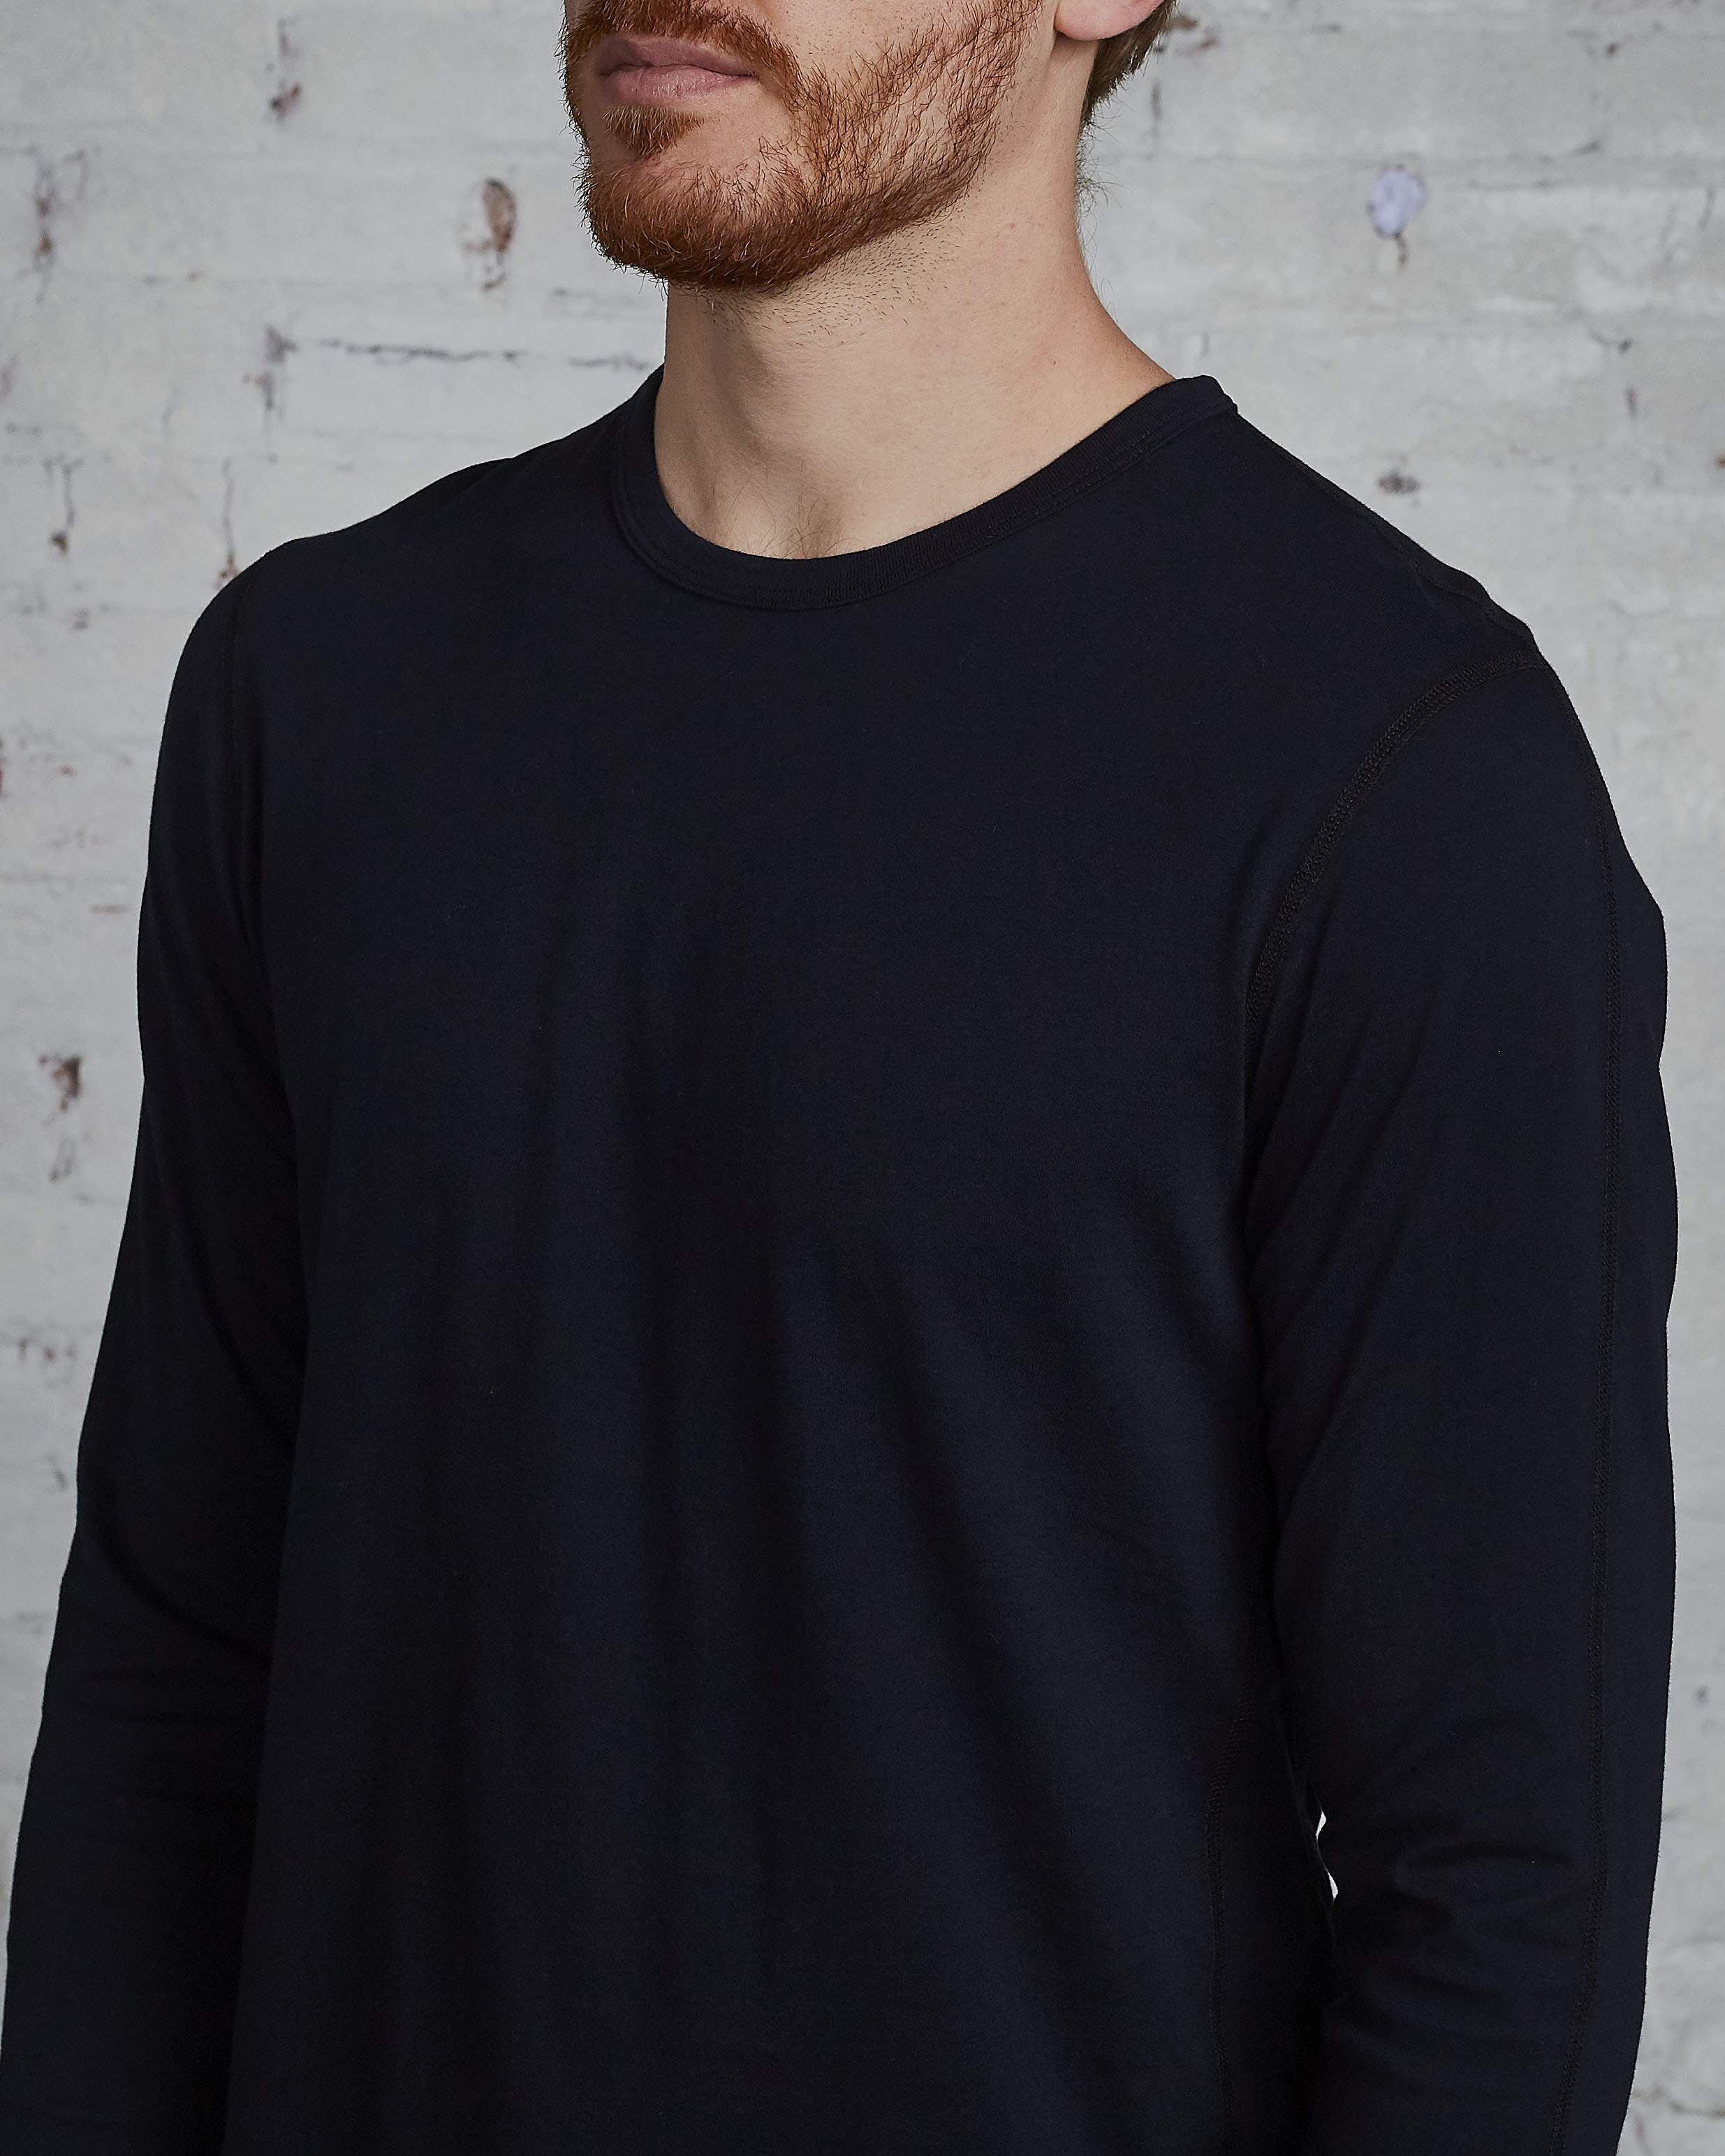 Reigning Champ Ringspun Long Sleeve T-Shirt Black